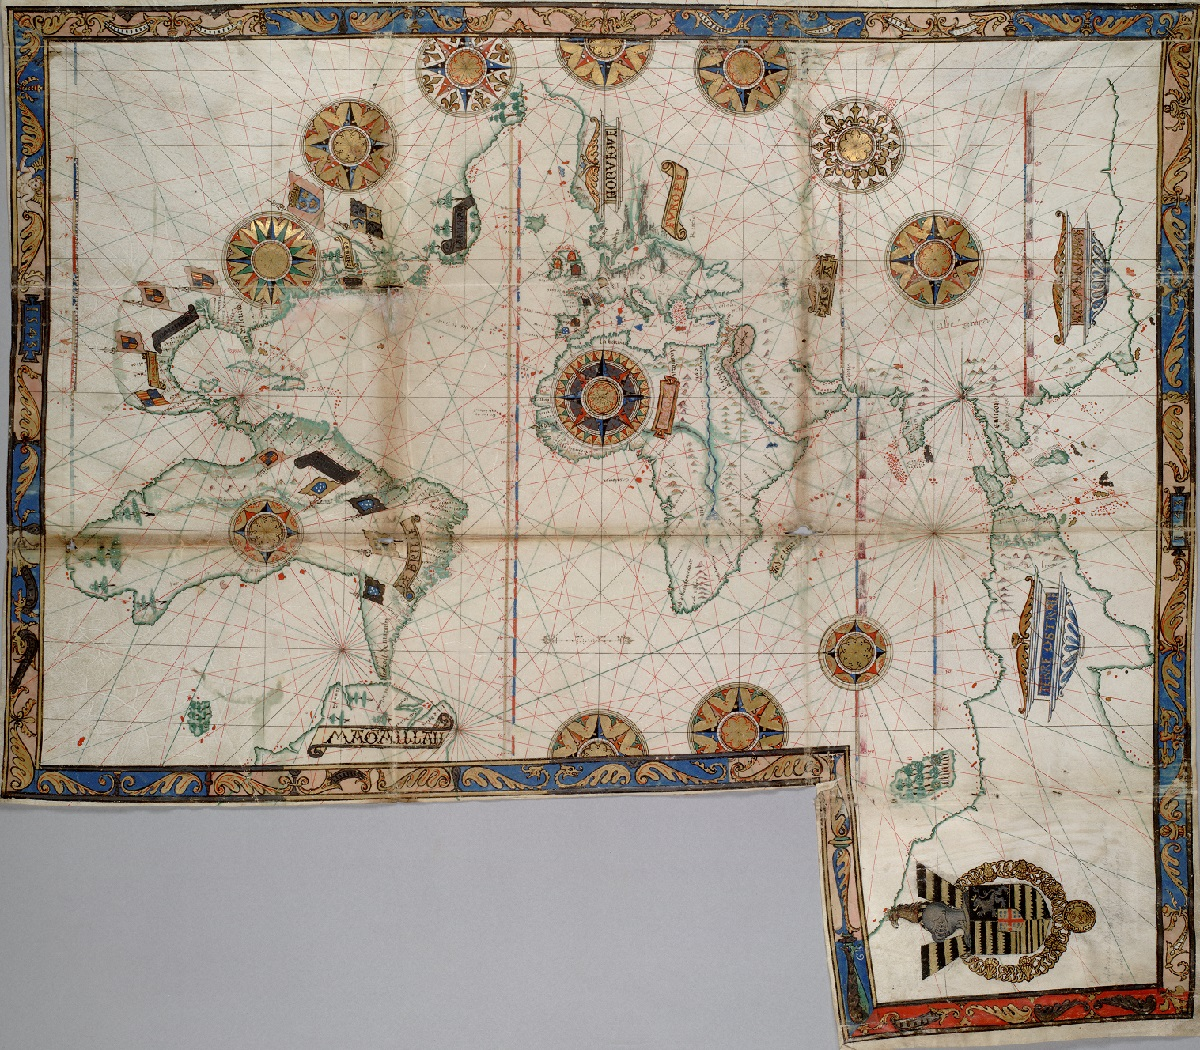 Guillaume_Brouscon._World_chart,_which_includes_America_and_a_large_Terra_Java_(Australia)._HM...jpg